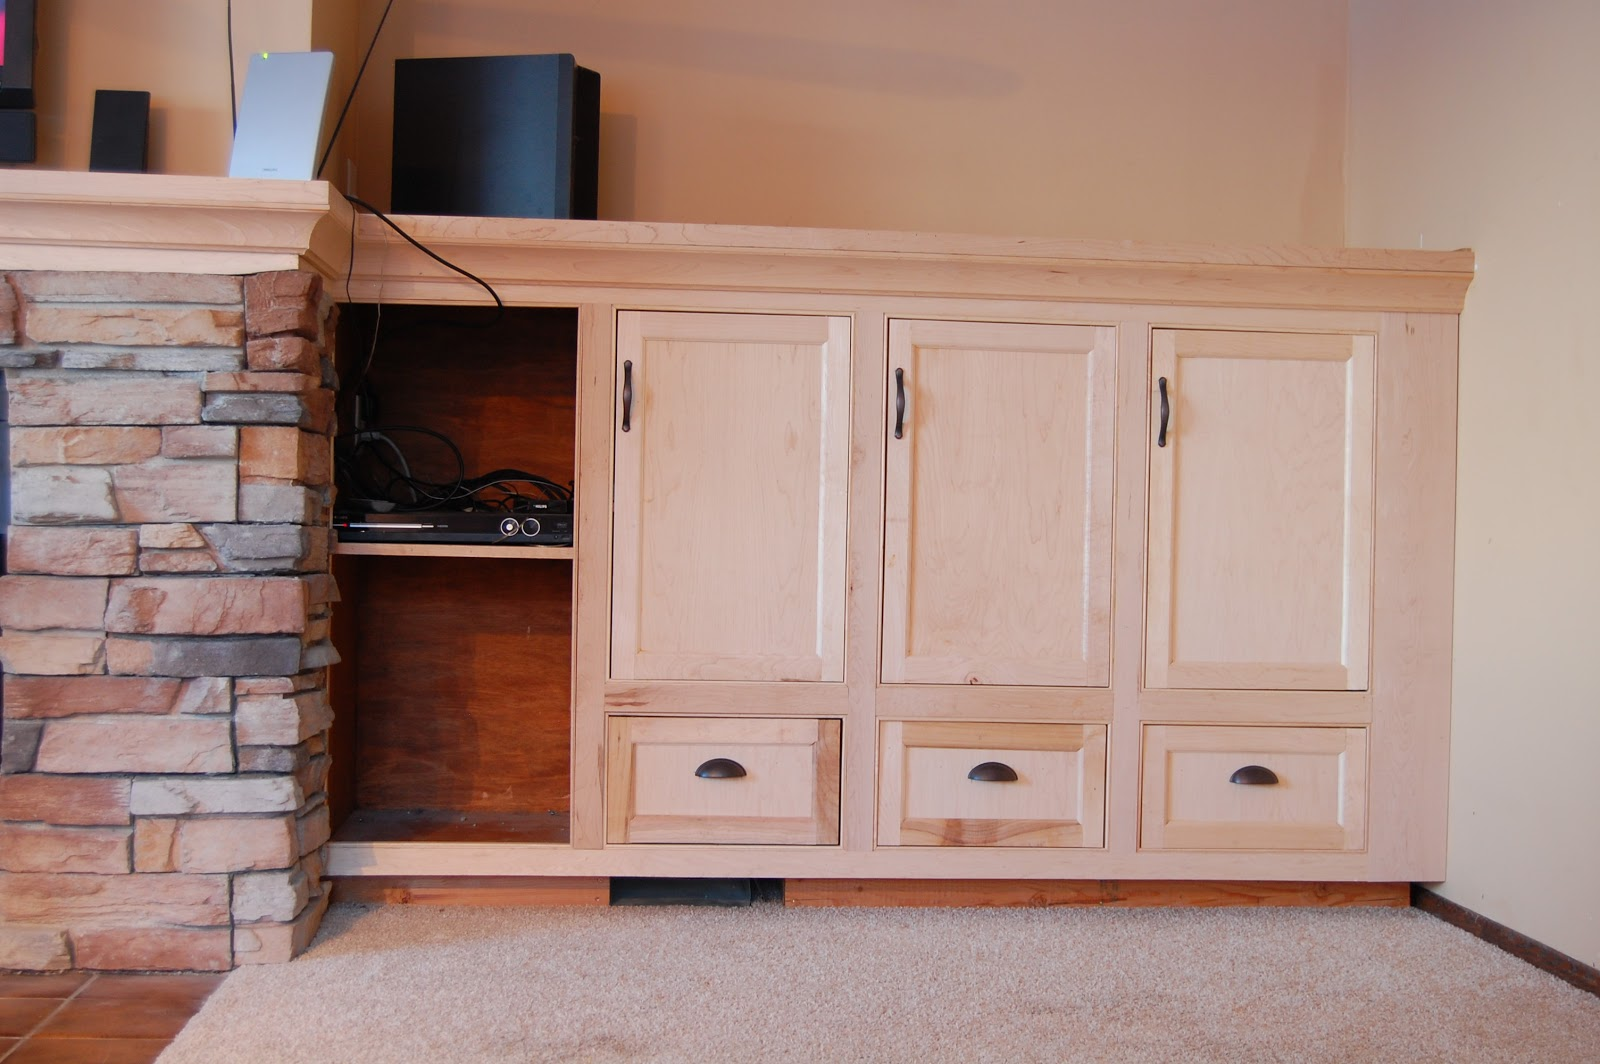 Remodelaholic   Amazing DIY Fireplace and Built-Ins